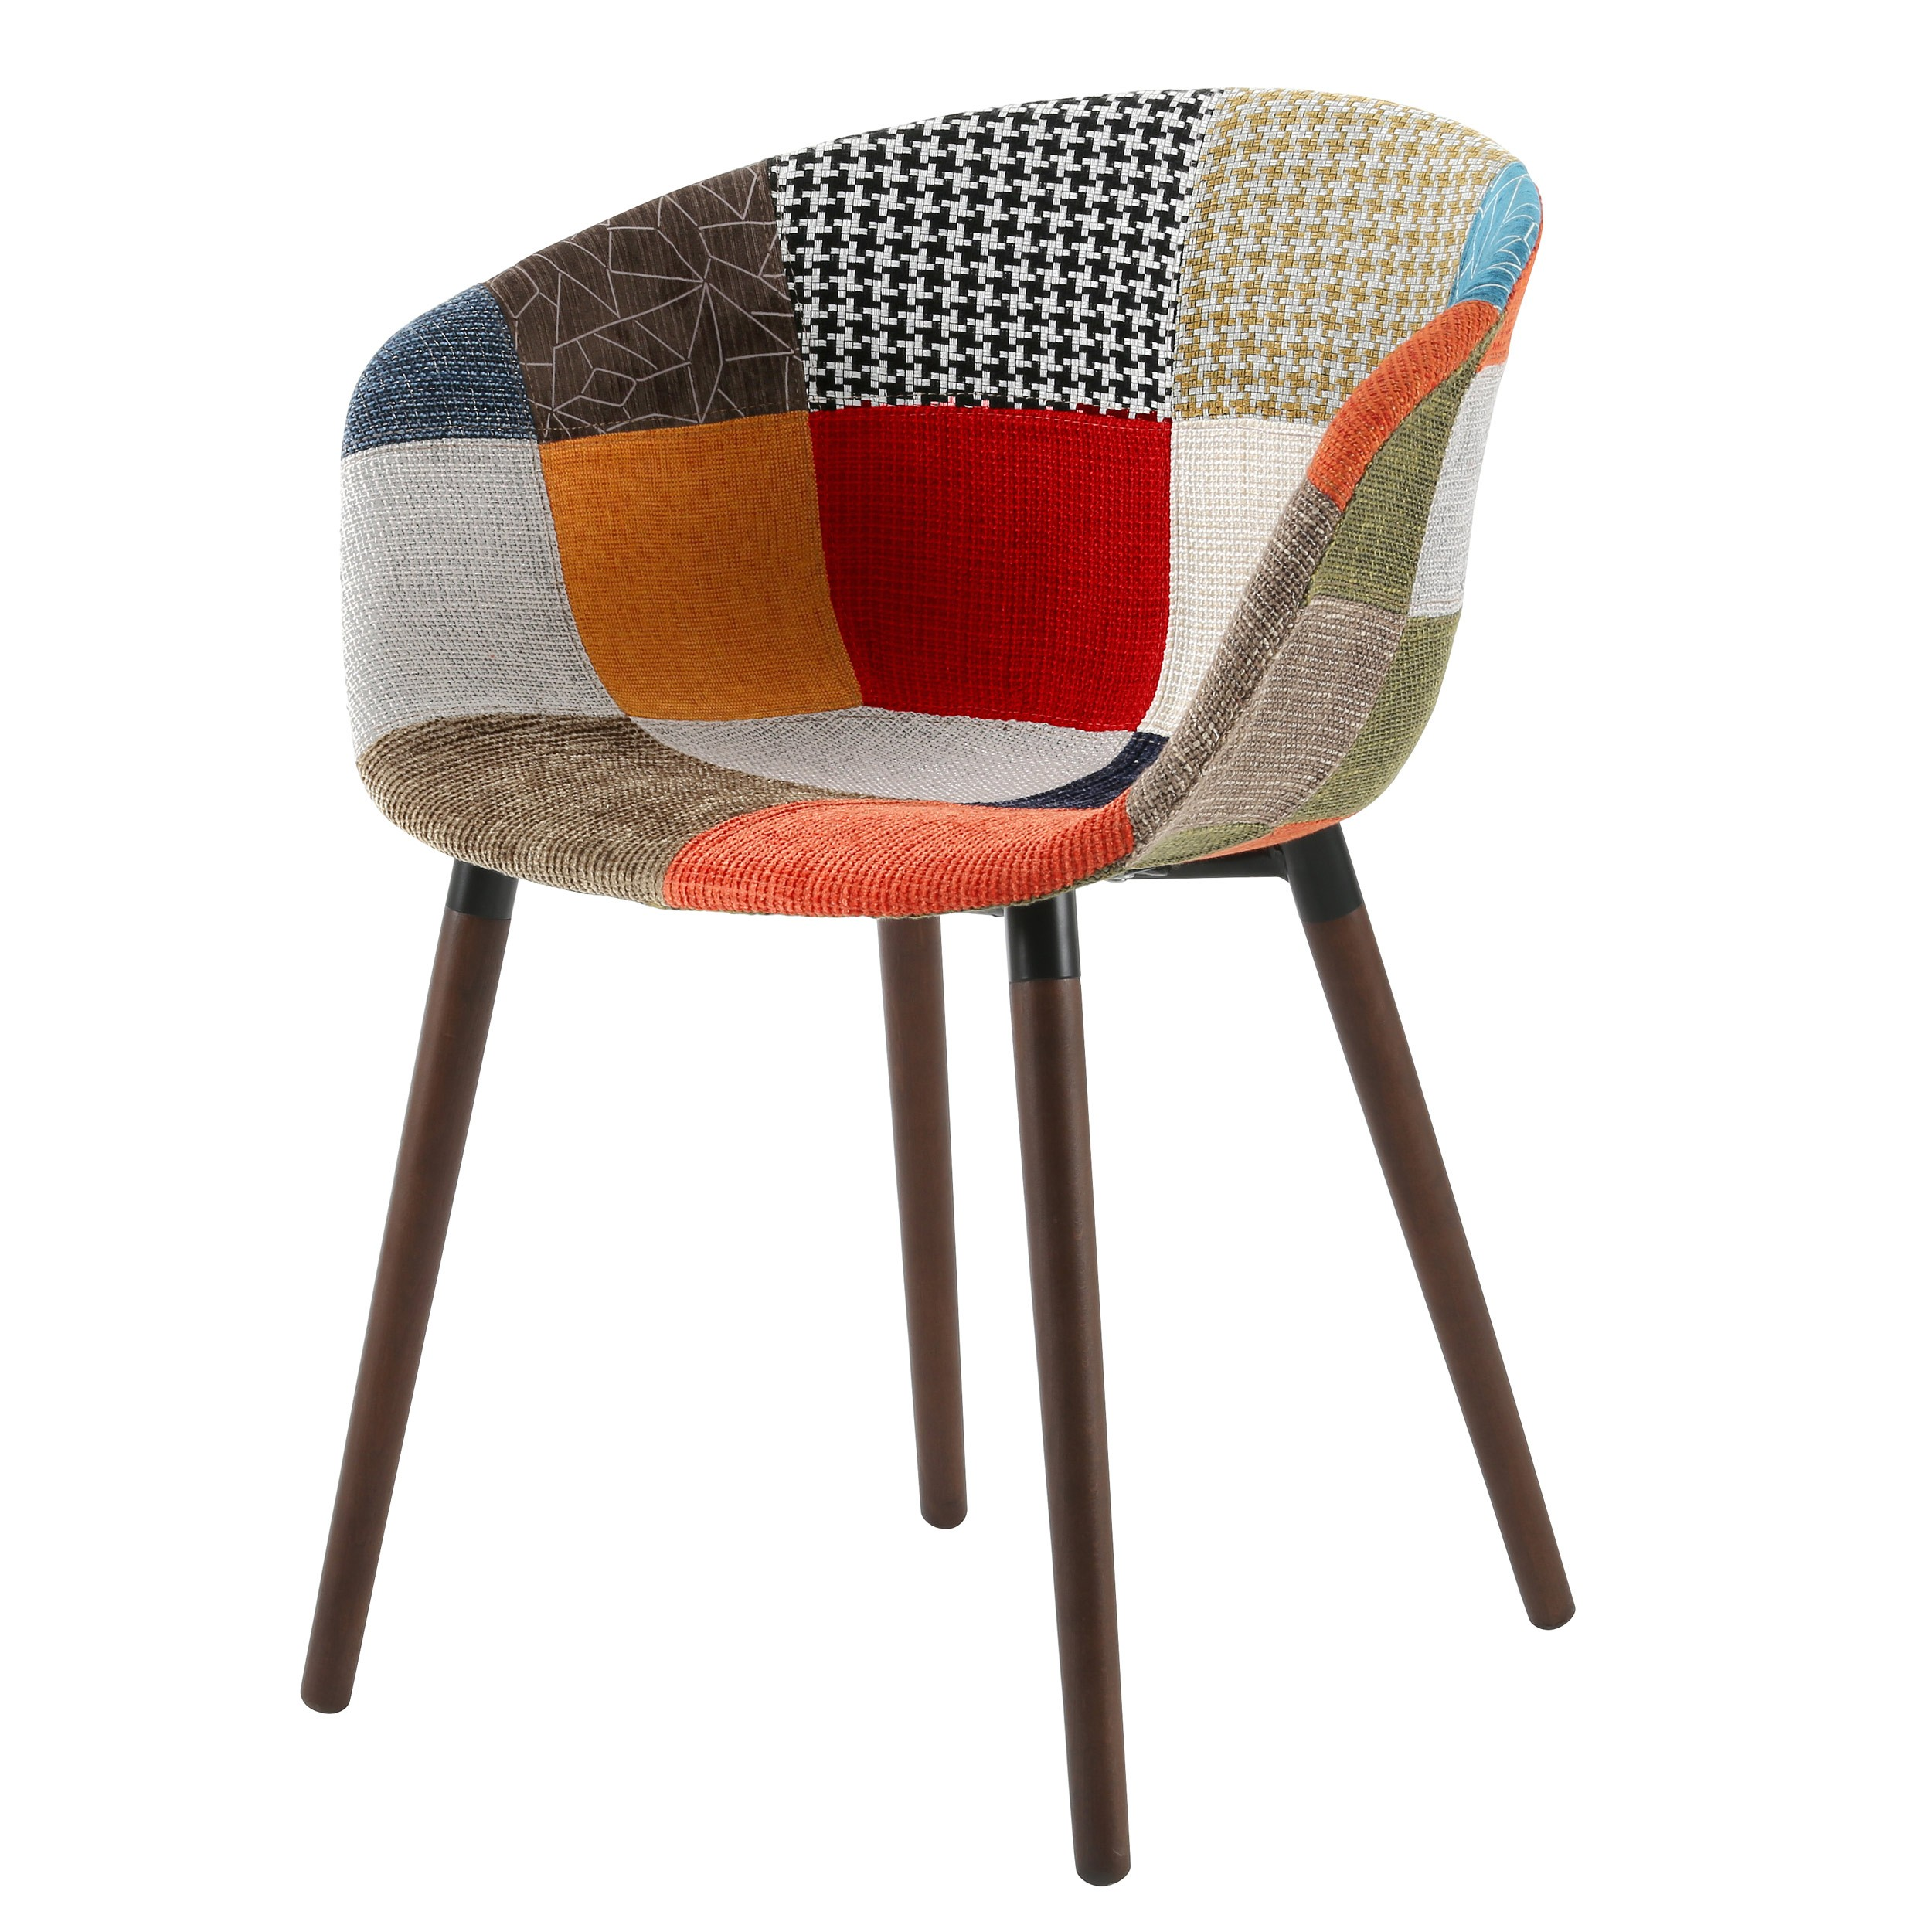 acheter chaise design et confortable - Chaise Scandinave Multicolore